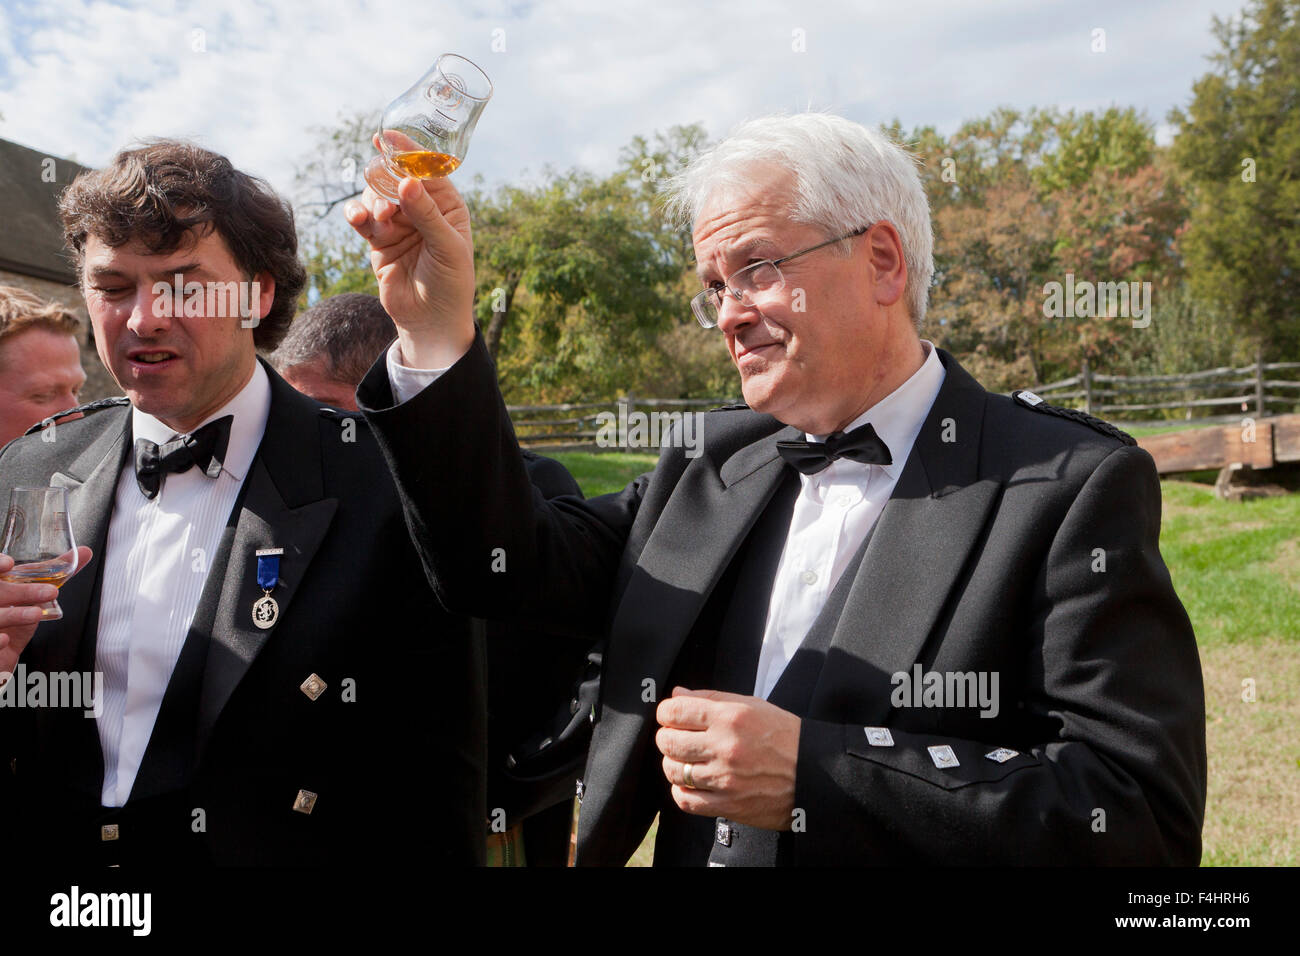 Andy Cant and Dr. William Lumsden tasting George Washington's Distillery Single Malt Whisky - Alexandria, Virginia - Stock Image